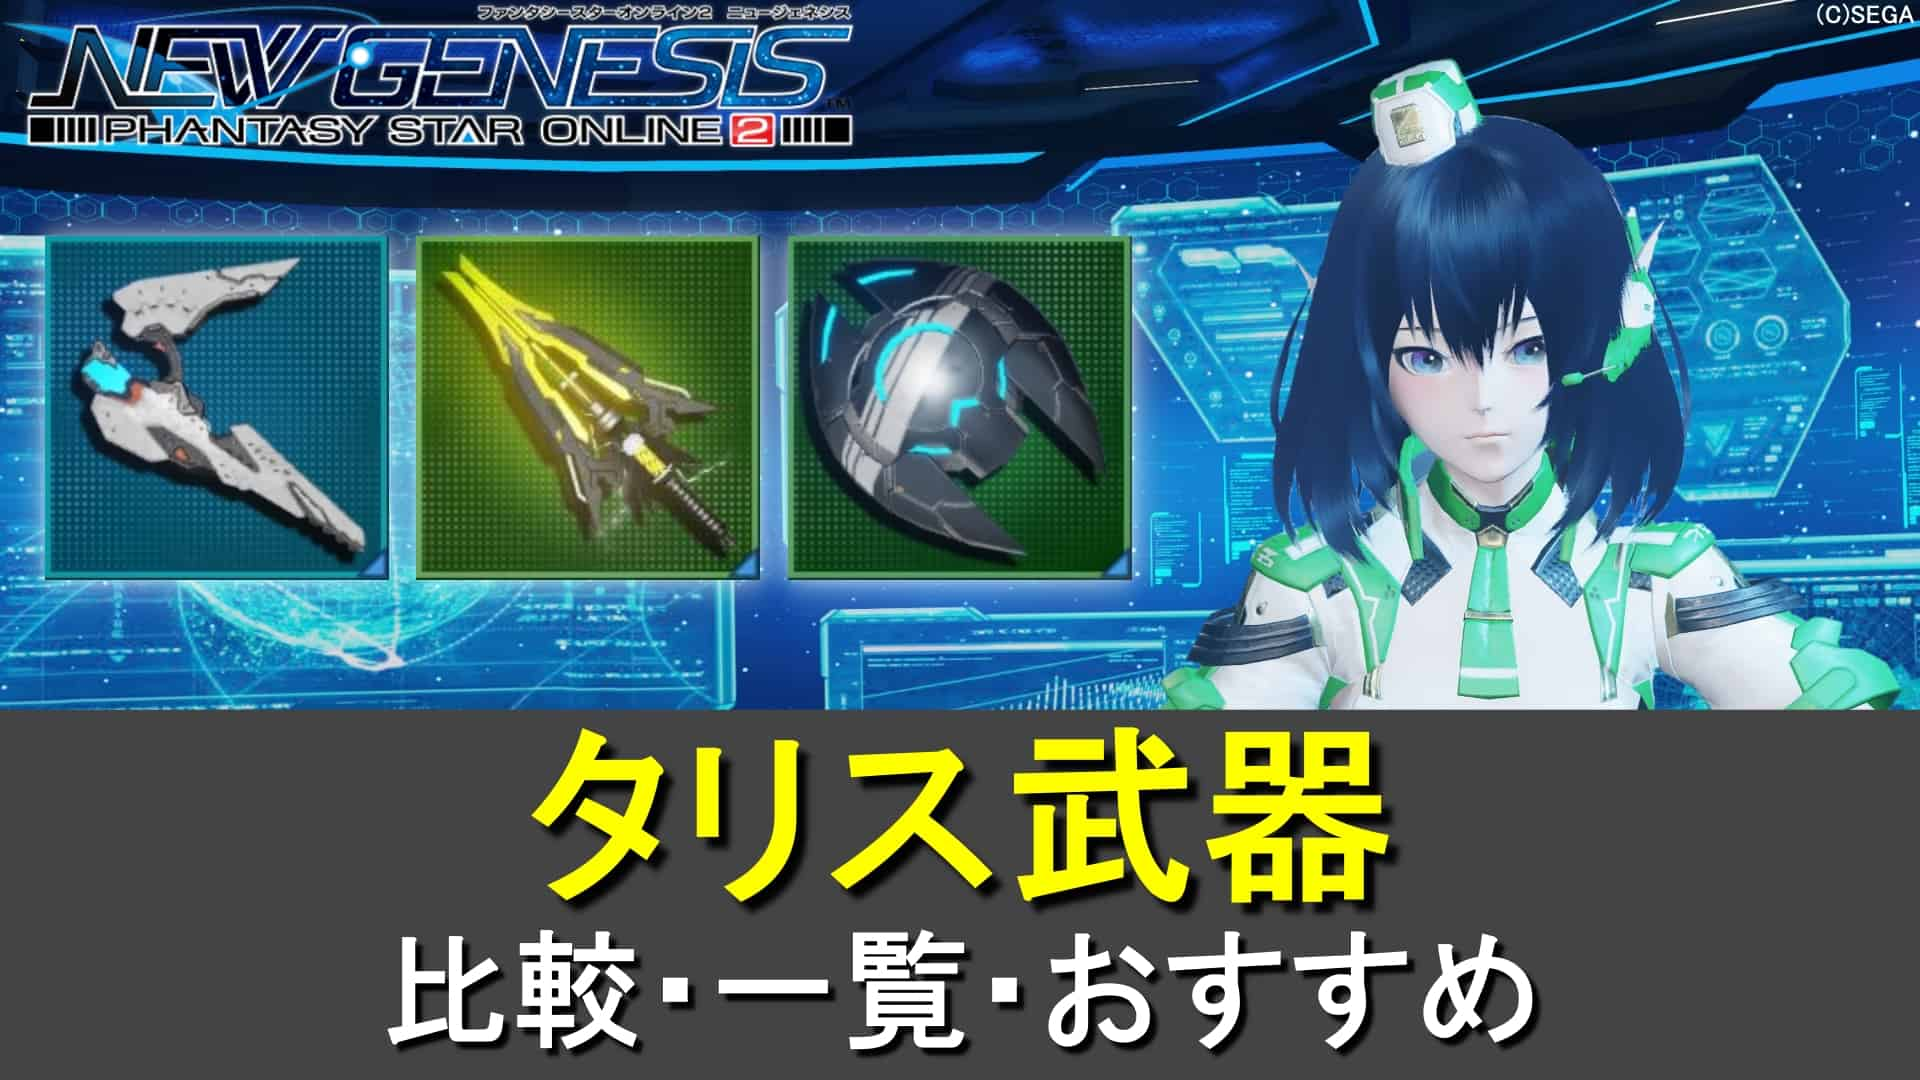 【PSO2NGS】タリス武器の一覧、潜在まとめ